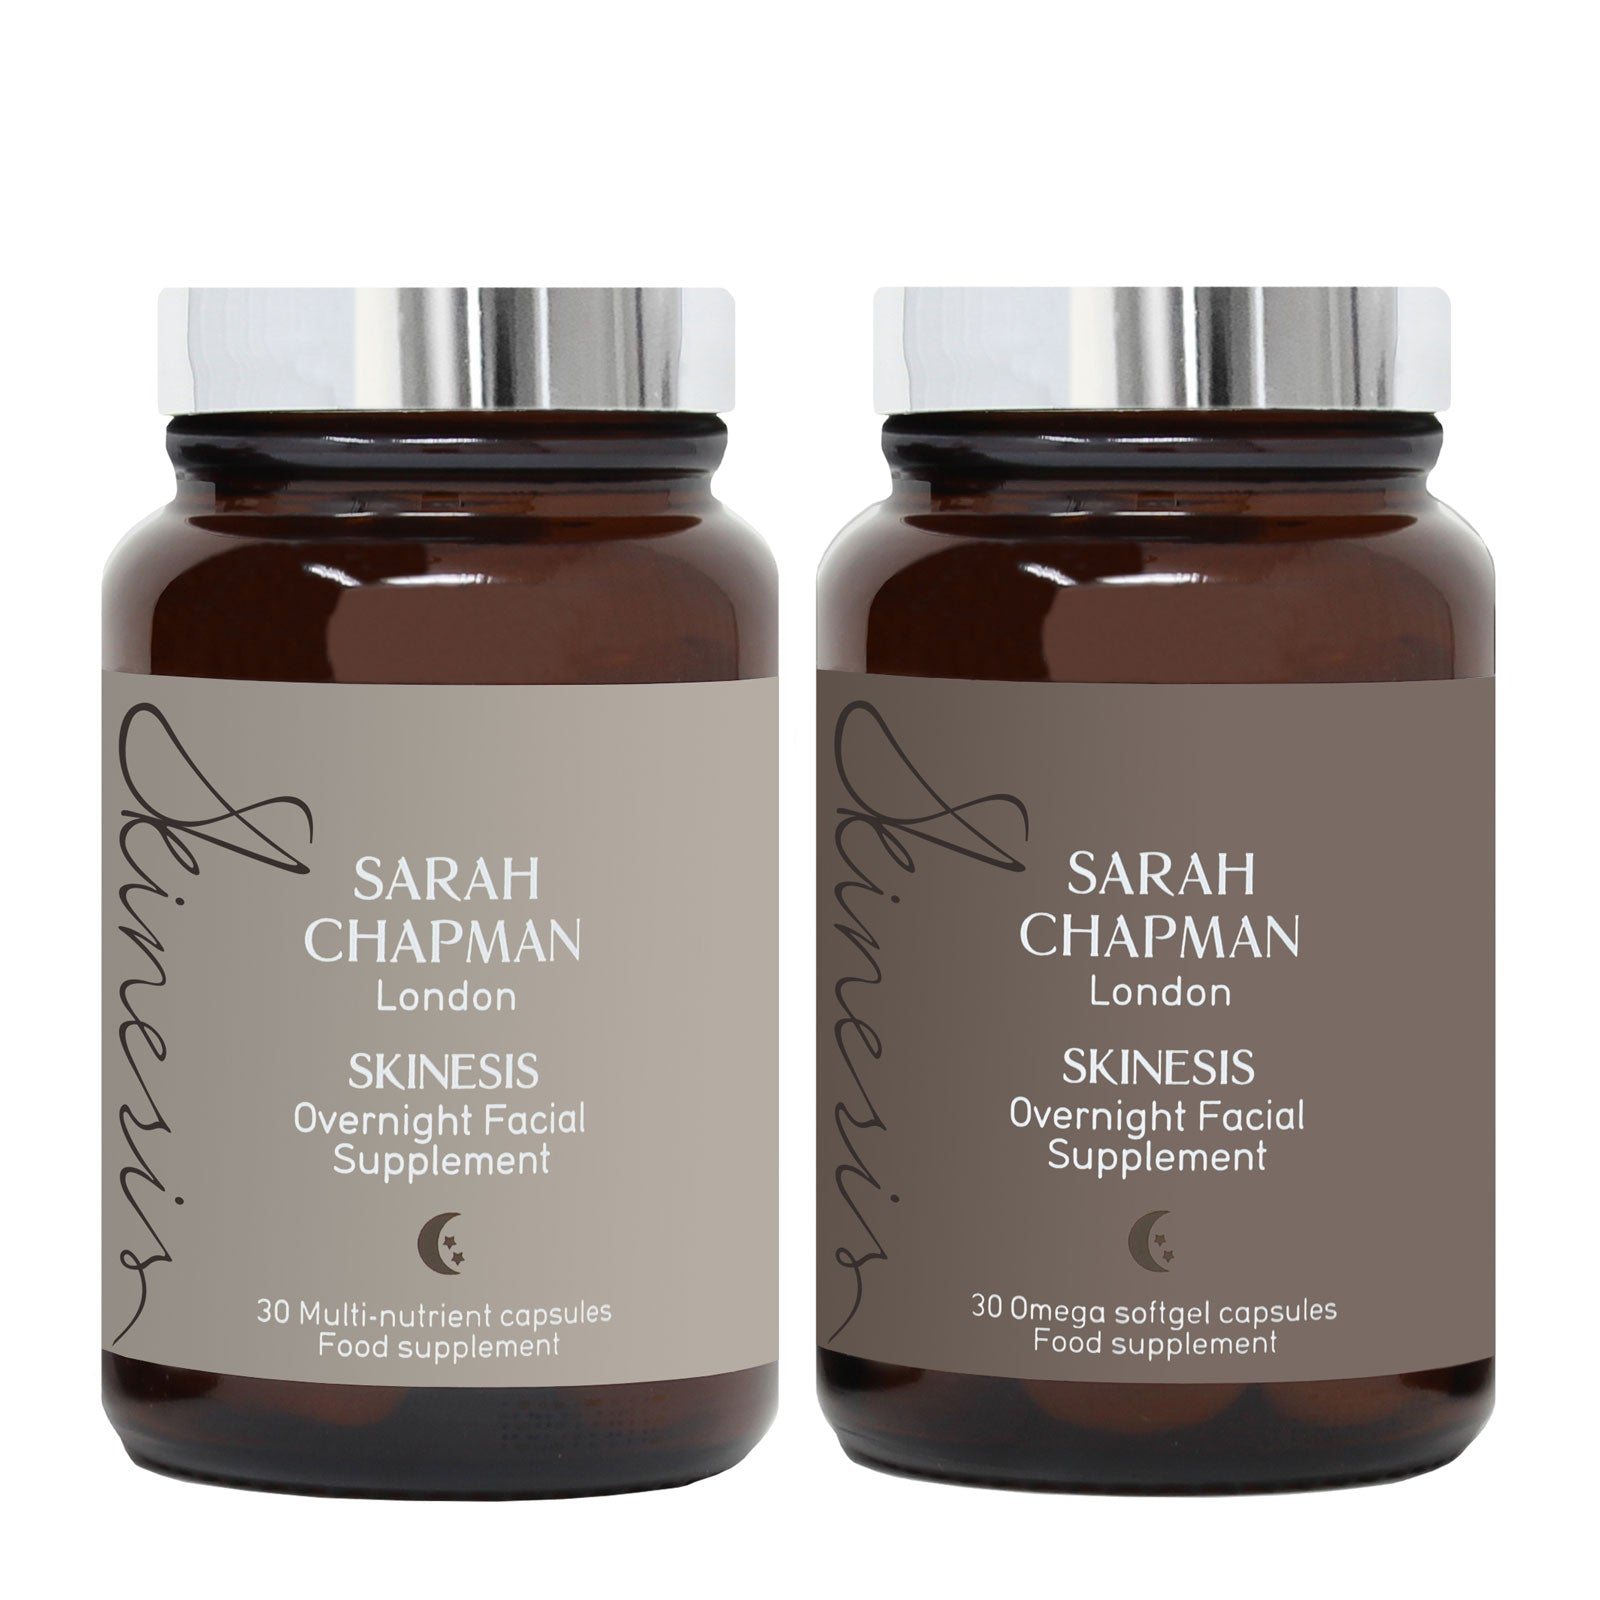 Sarah Chapman Skinesis Overnight Facial Supplement Duo